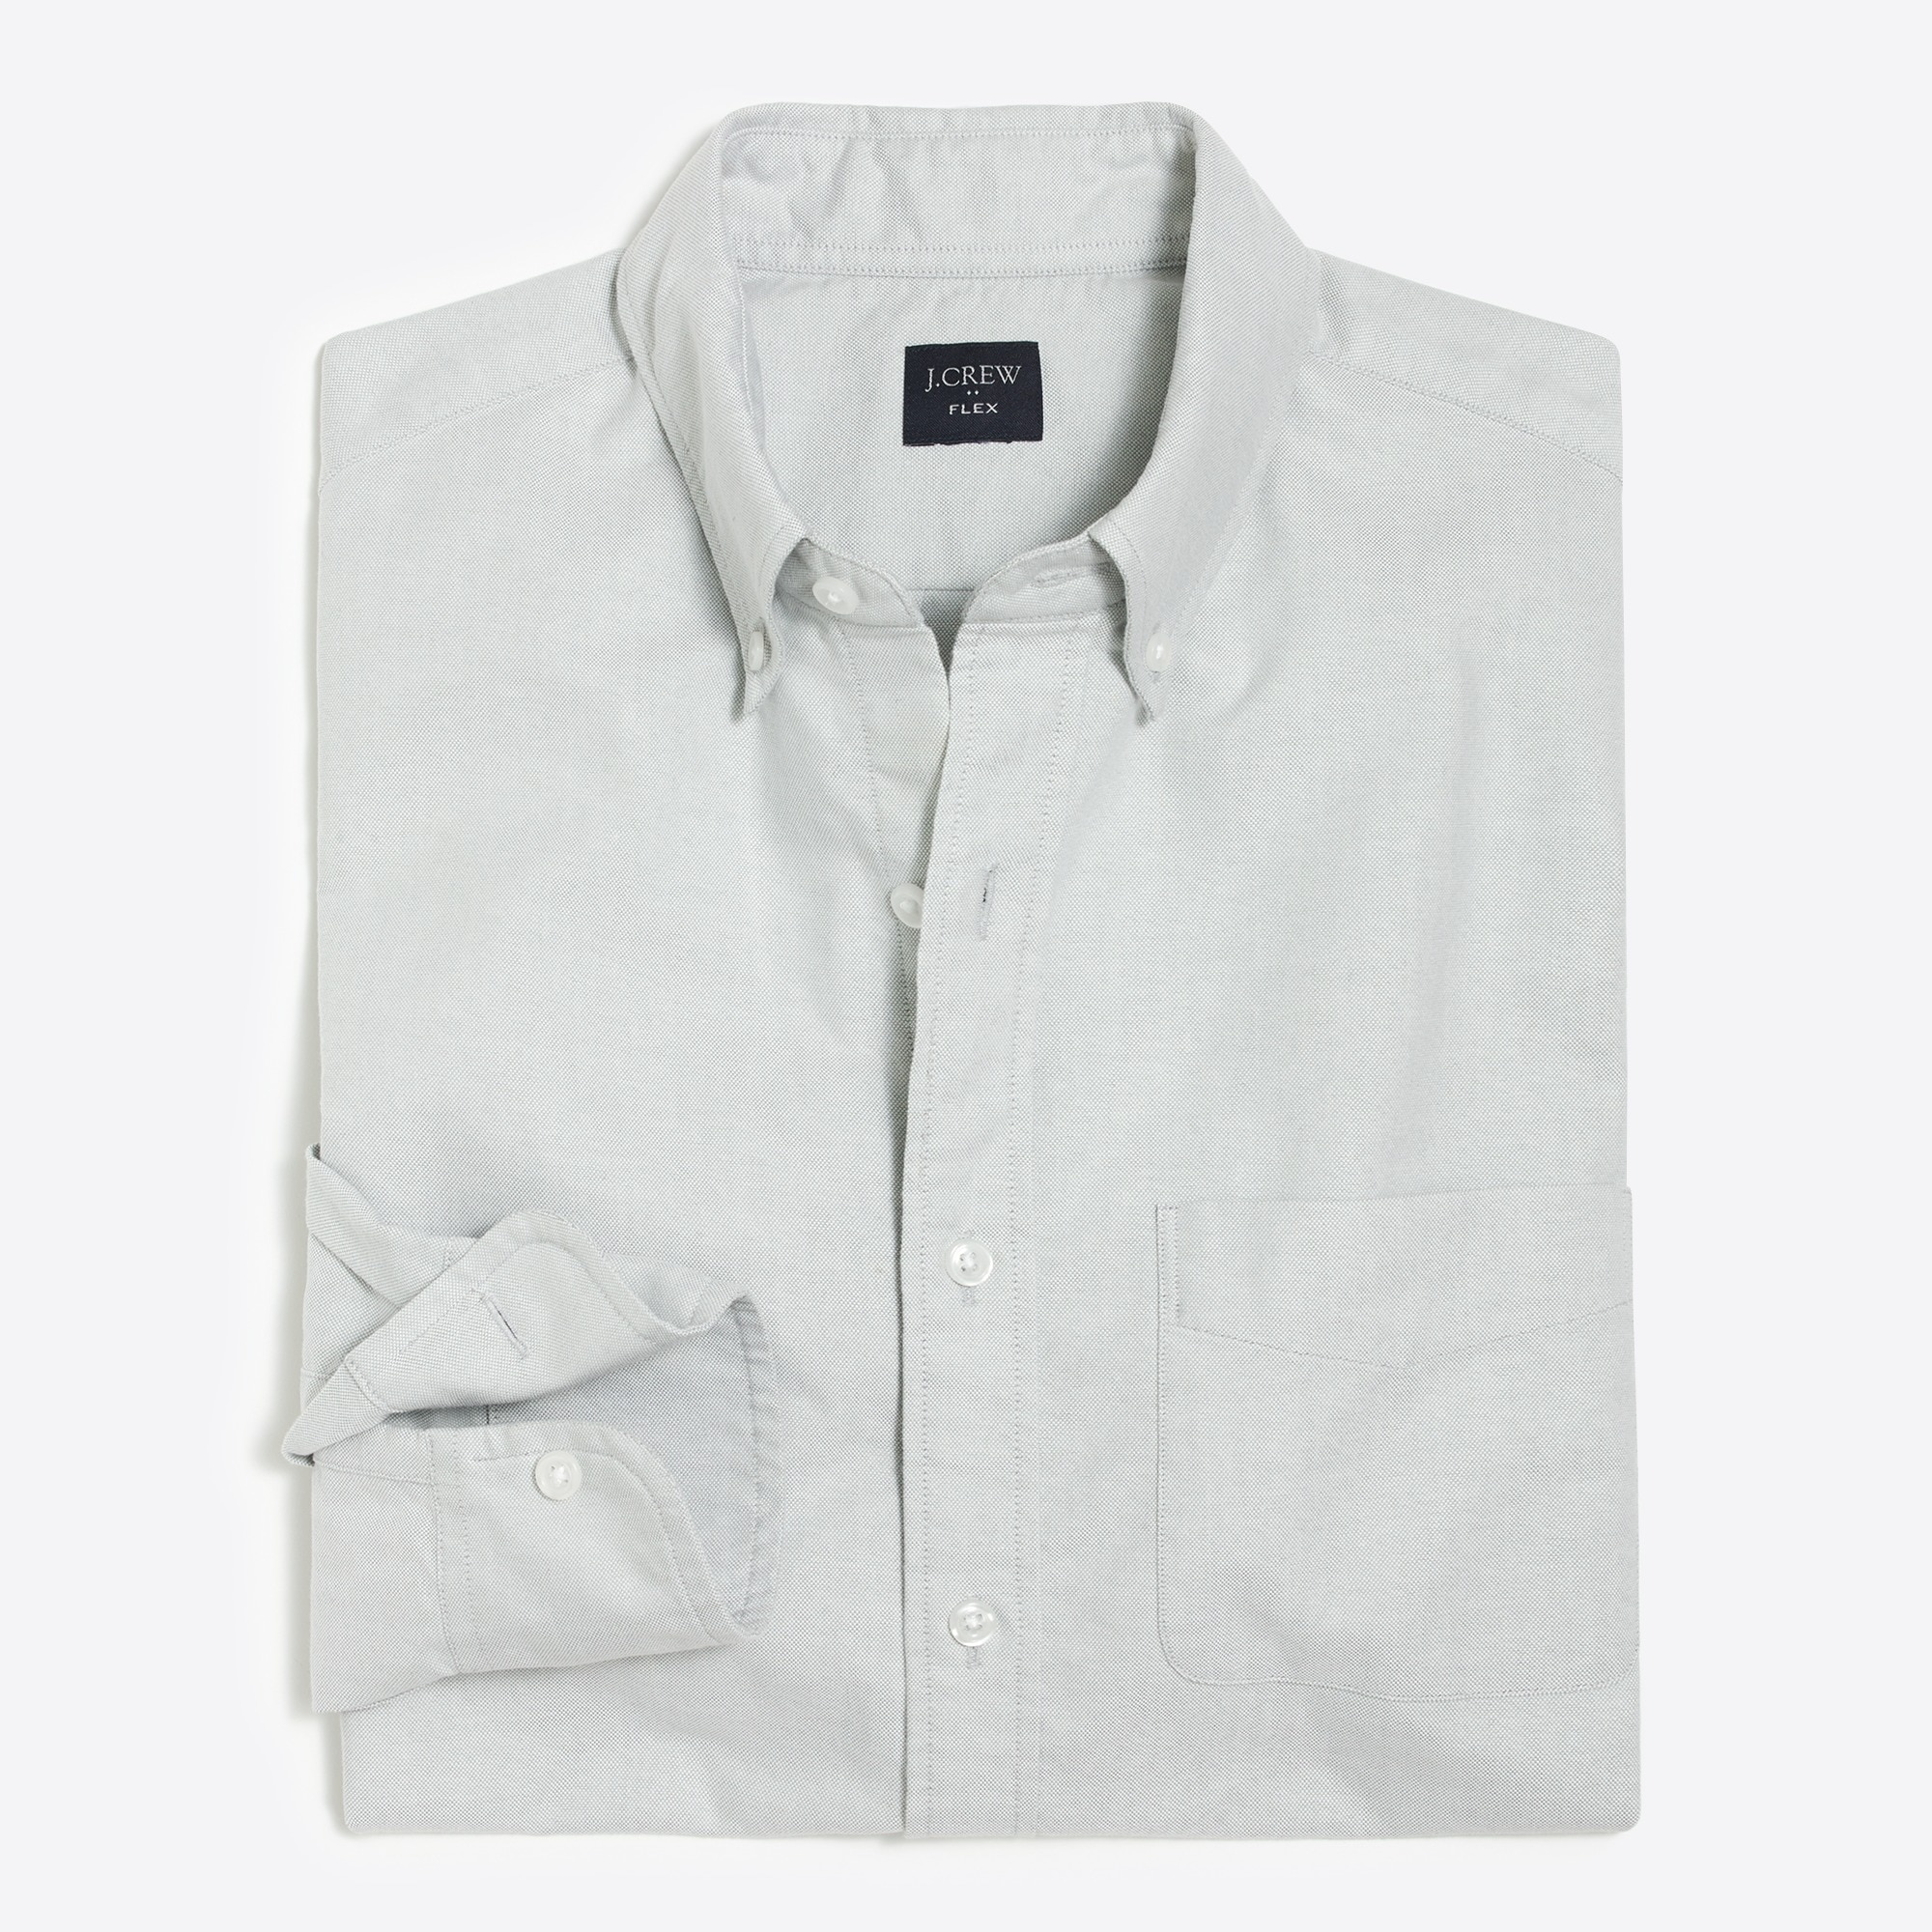 factory mens Tall flex oxford shirt